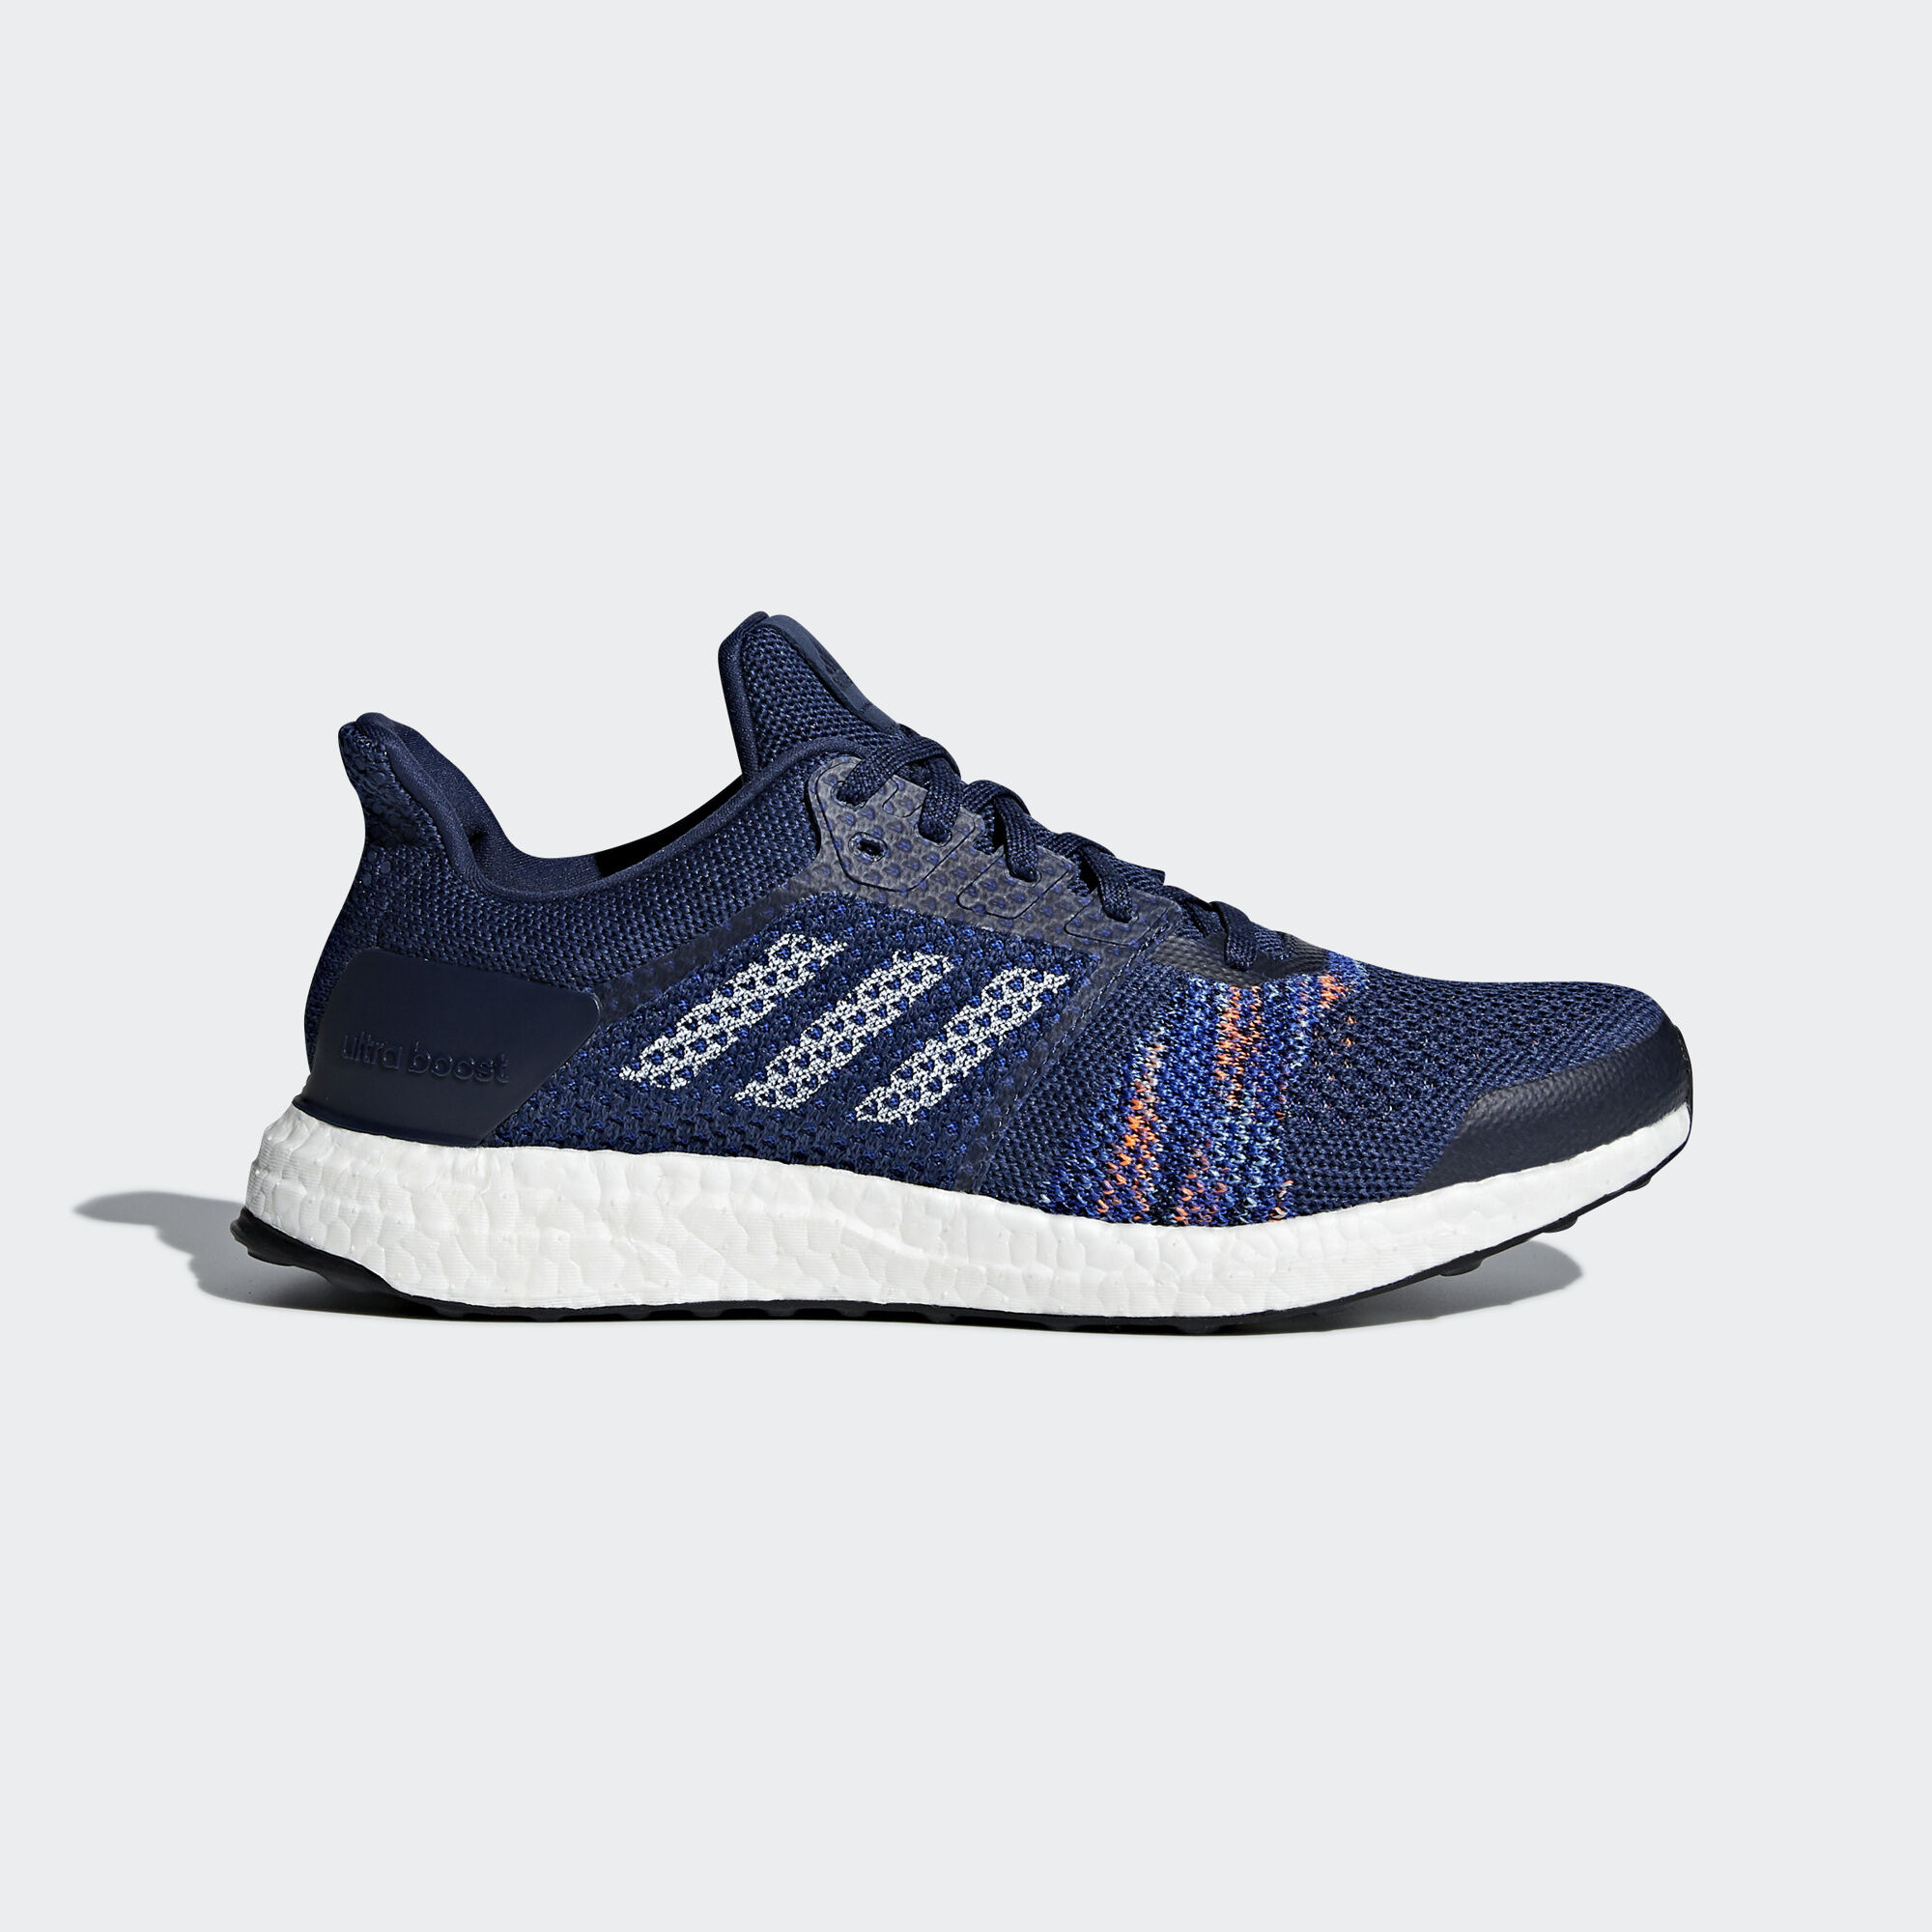 adidas - Ultraboost ST Shoes Noble Indigo/Ftwr White/Collegiate Navy  CQ2146. Men Running